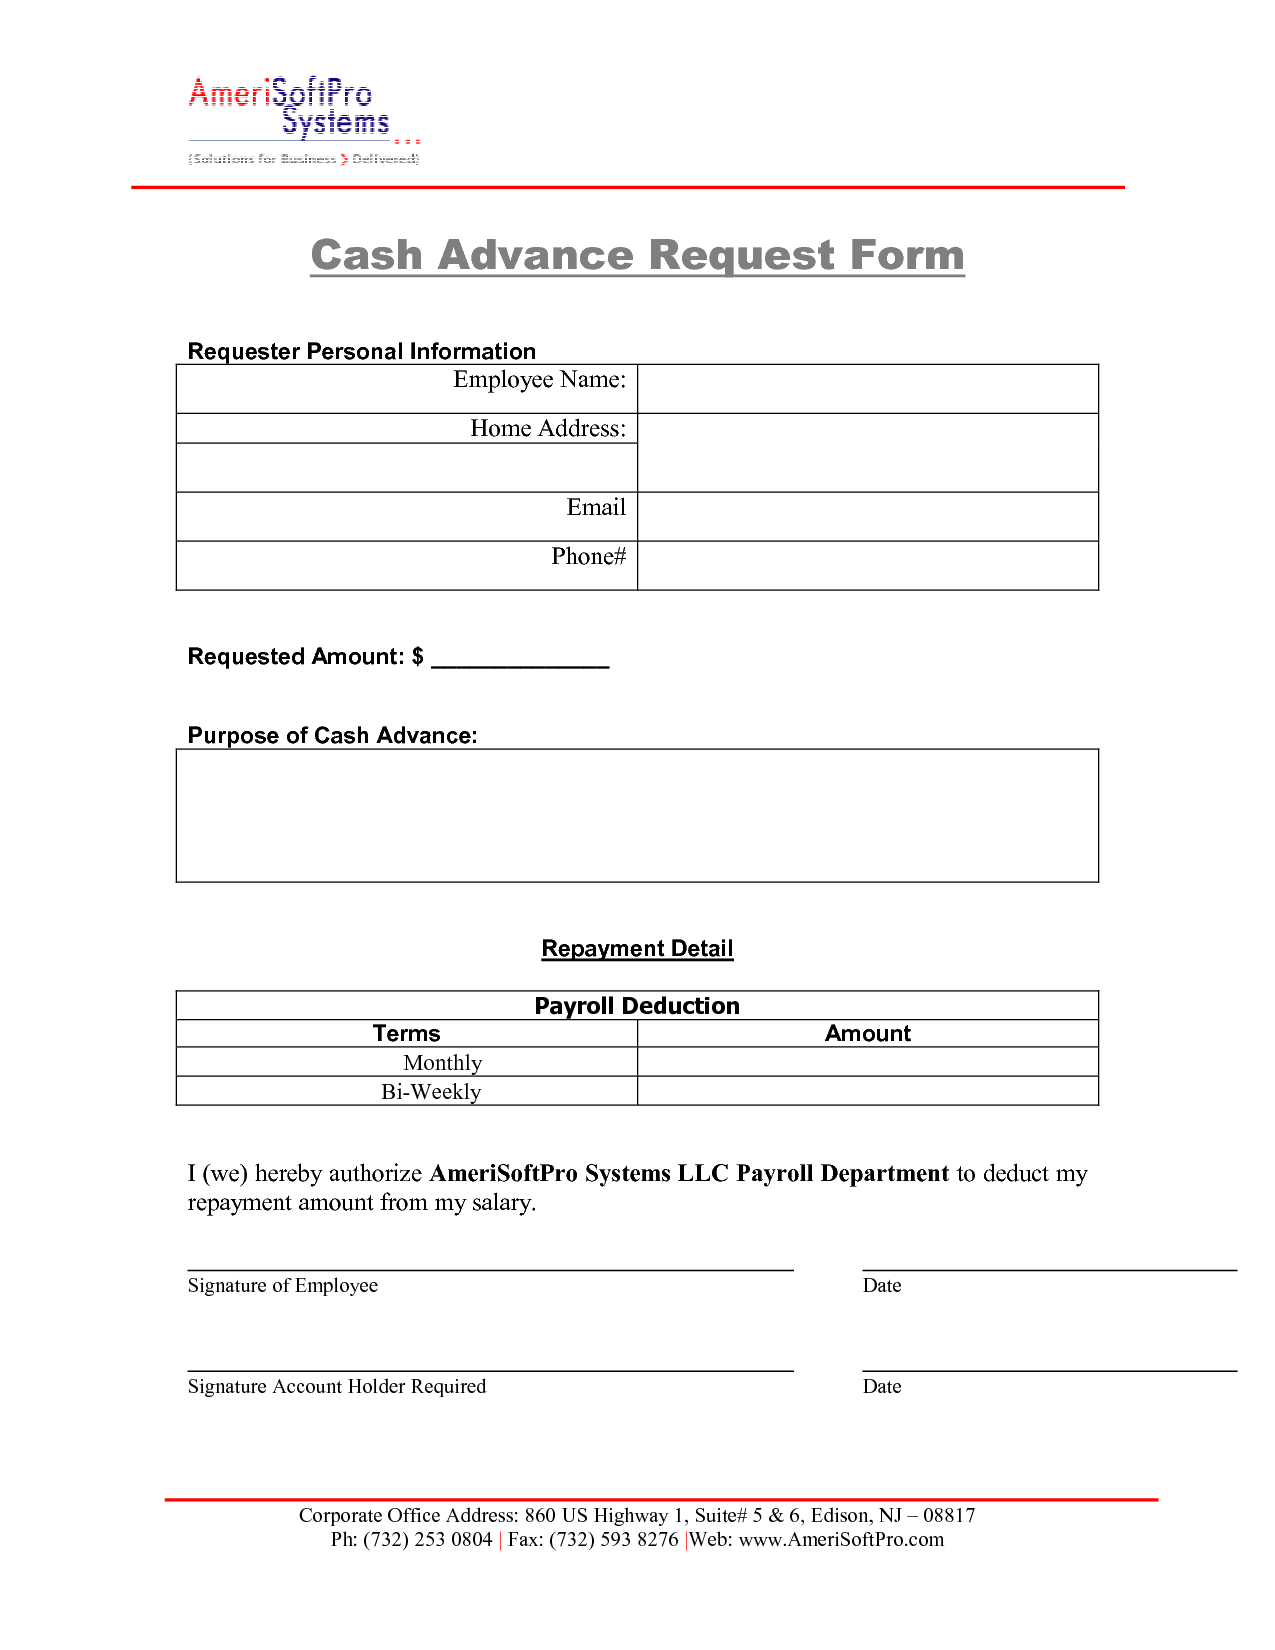 Cash Advance Form Excel 12 – elsik blue cetane